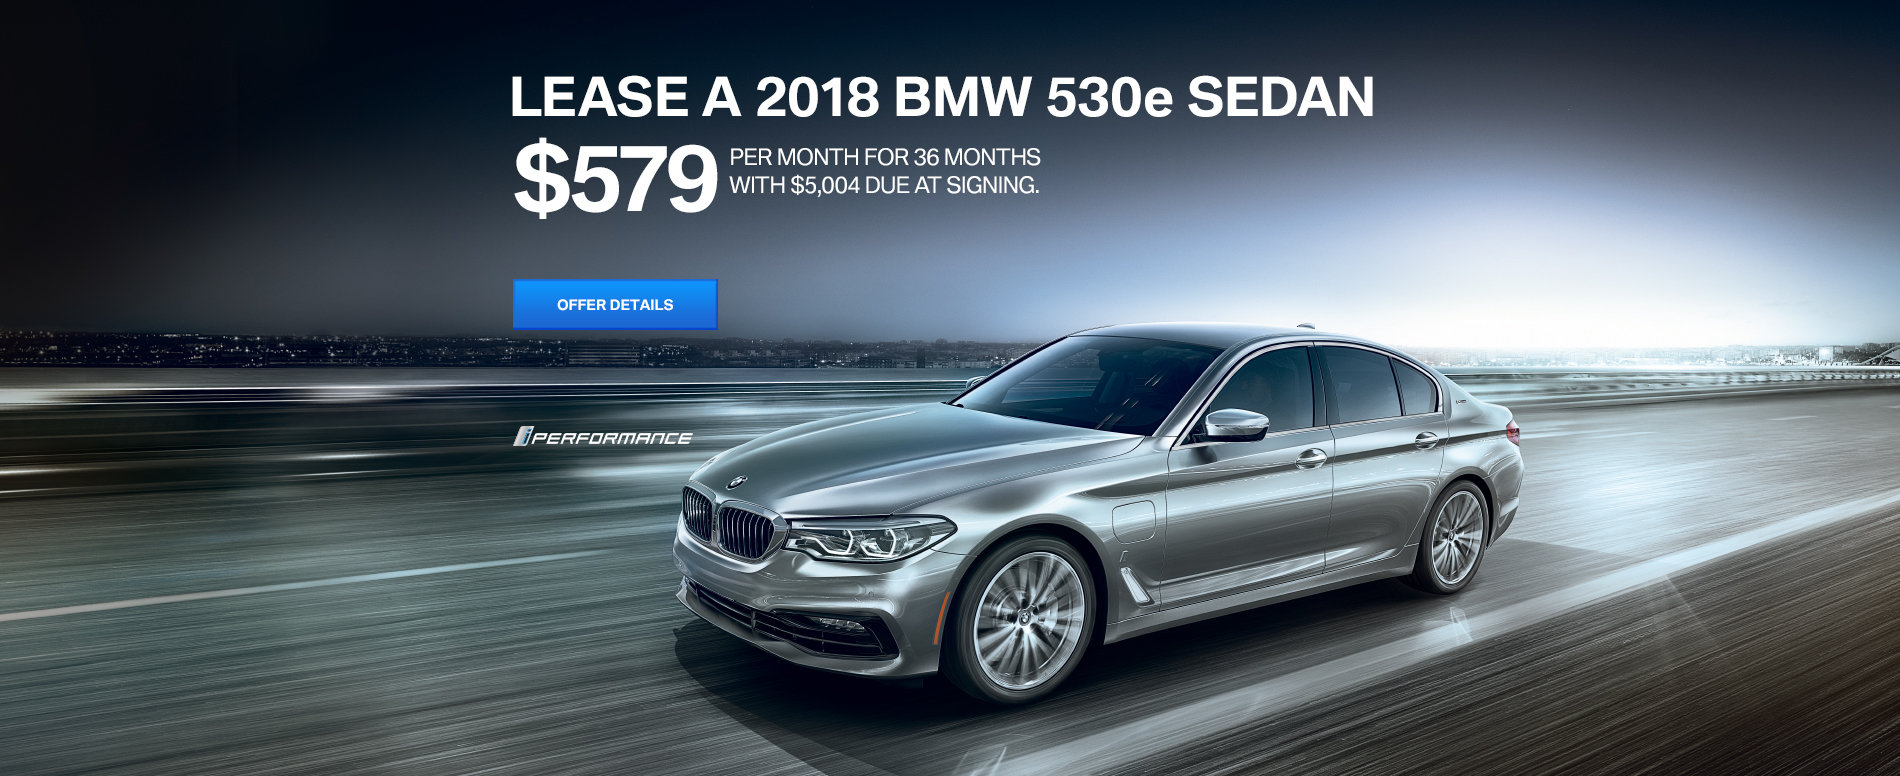 LEASE A 2018 BMW 530e iPERFORMANCE PLUG-IN HYBRID FOR $579 PER